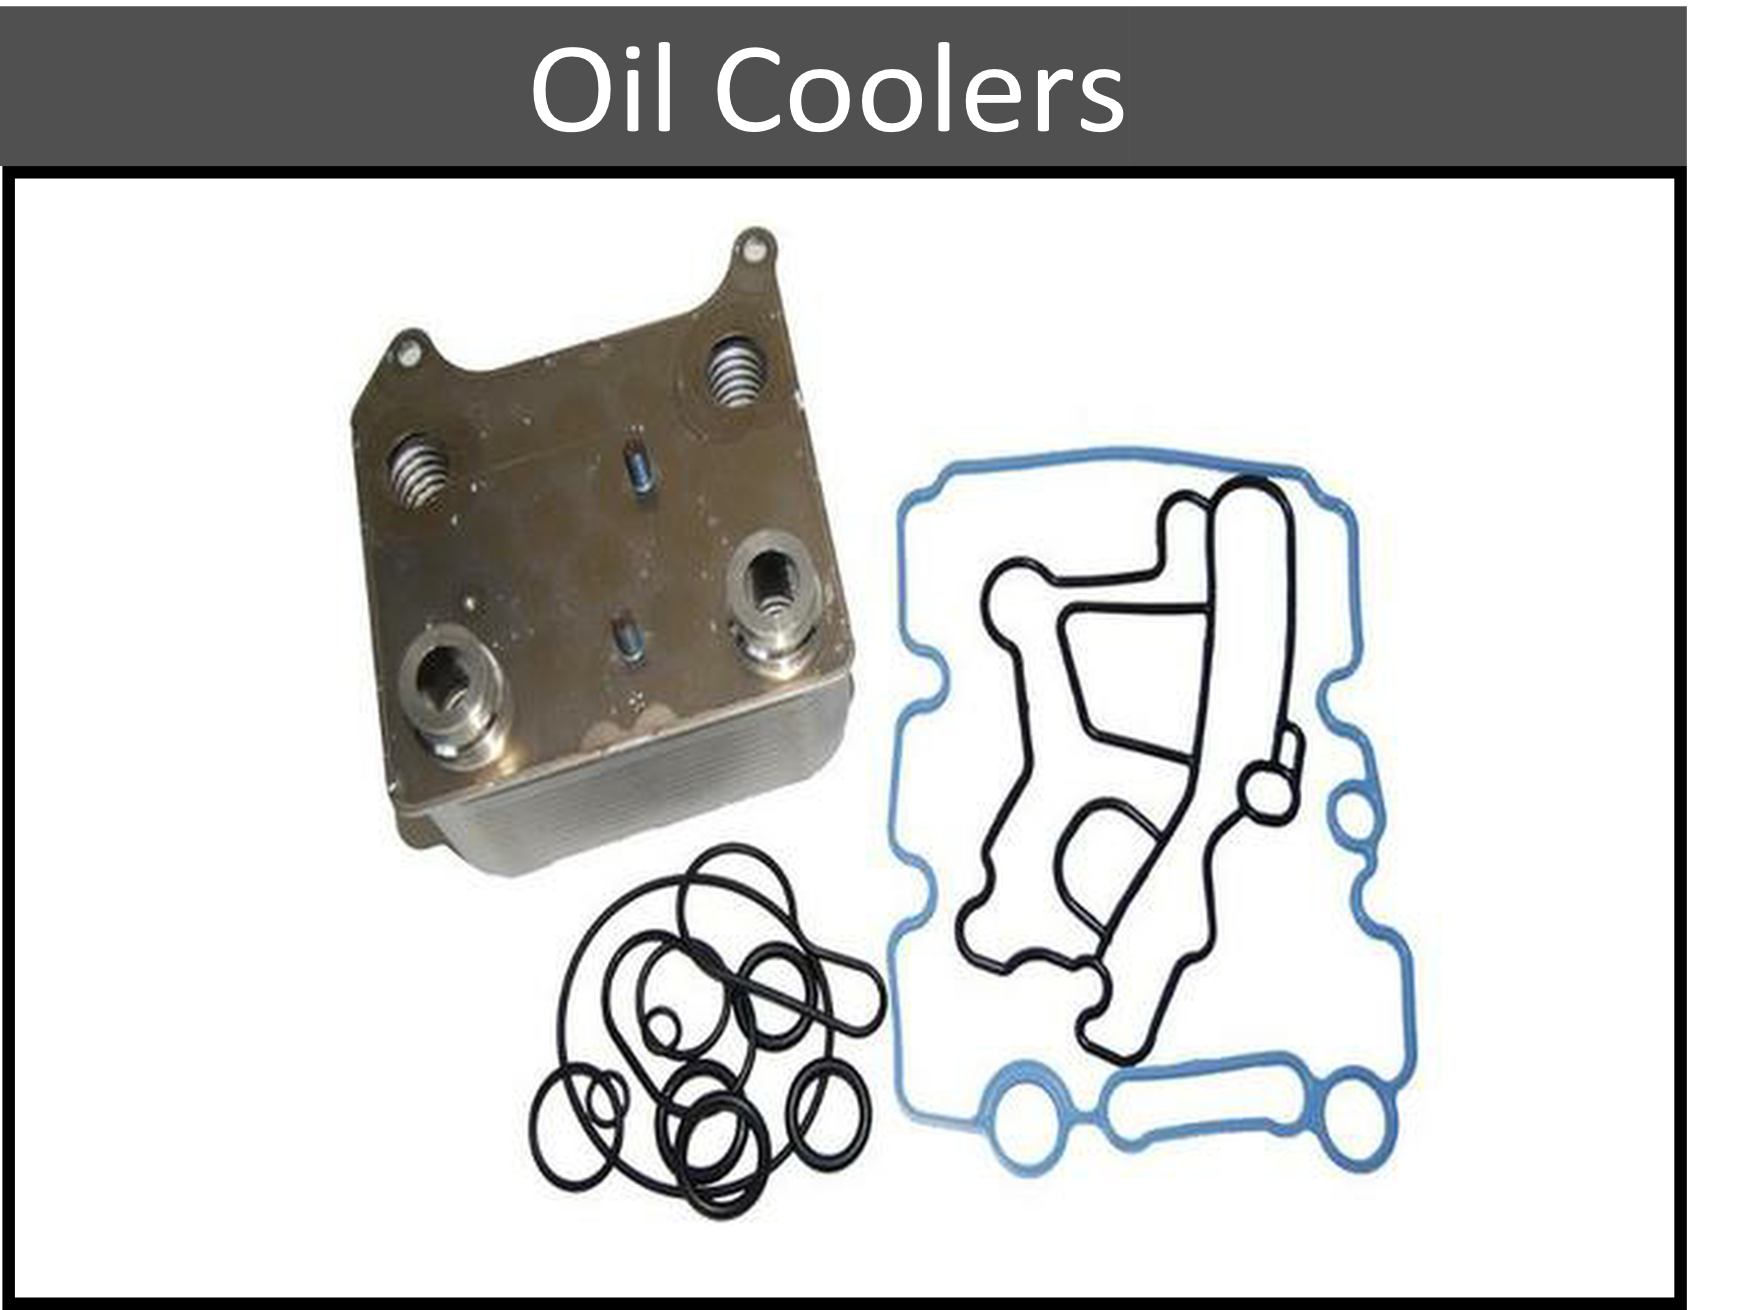 Replacement Oil Coolers and Related